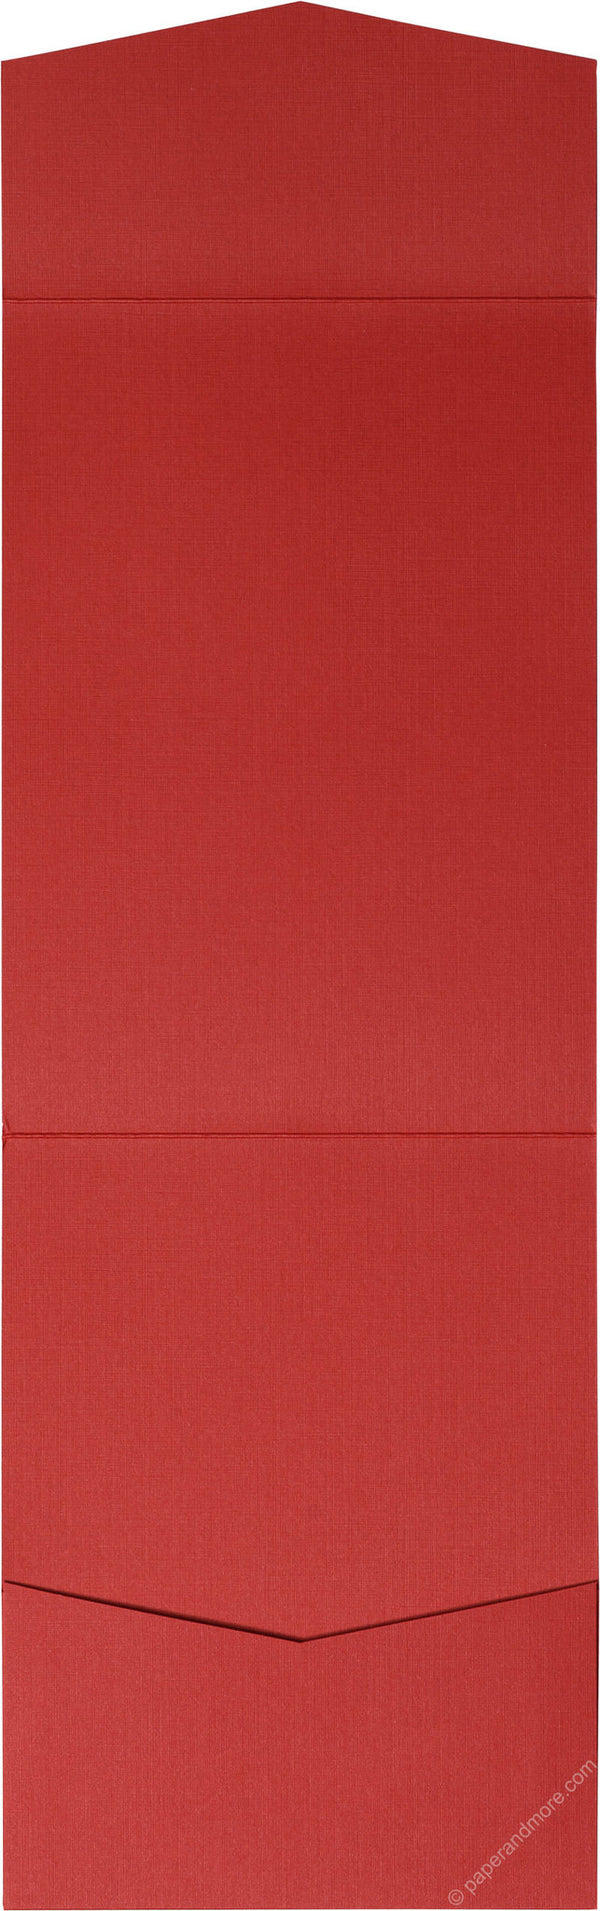 Red Pepper Linen Pocket Invitation Card, A7 Cascade - Paperandmore.com